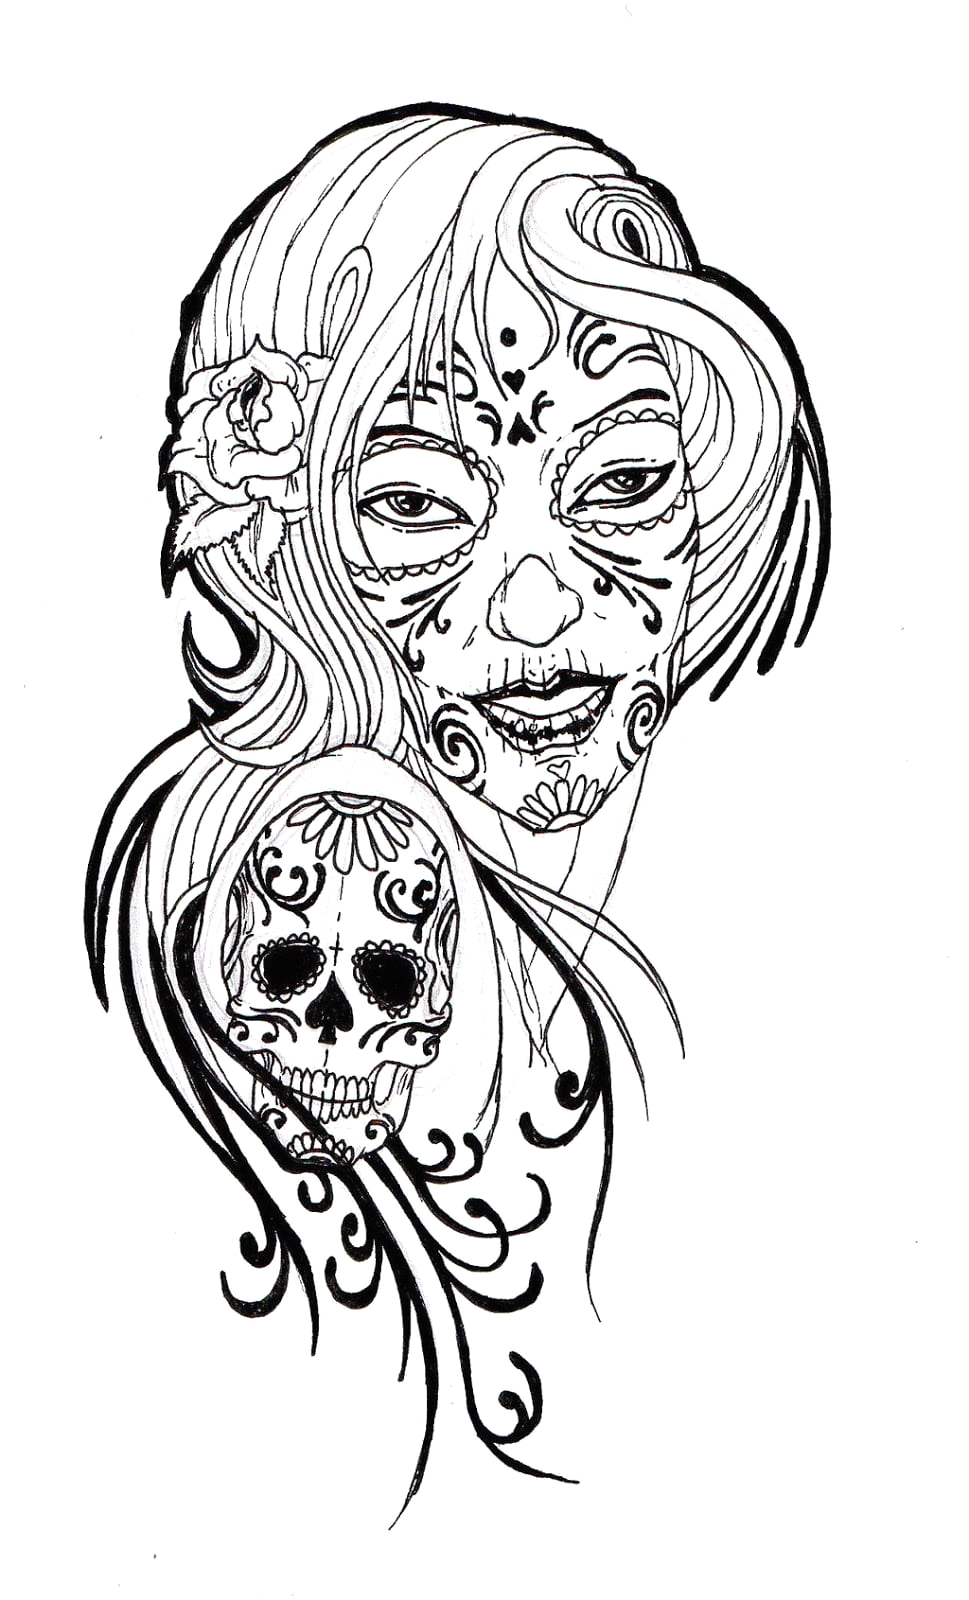 Sugar Skull Girl Coloring Pages for Adults Skull Coloring Pages for Adults Neo Coloring